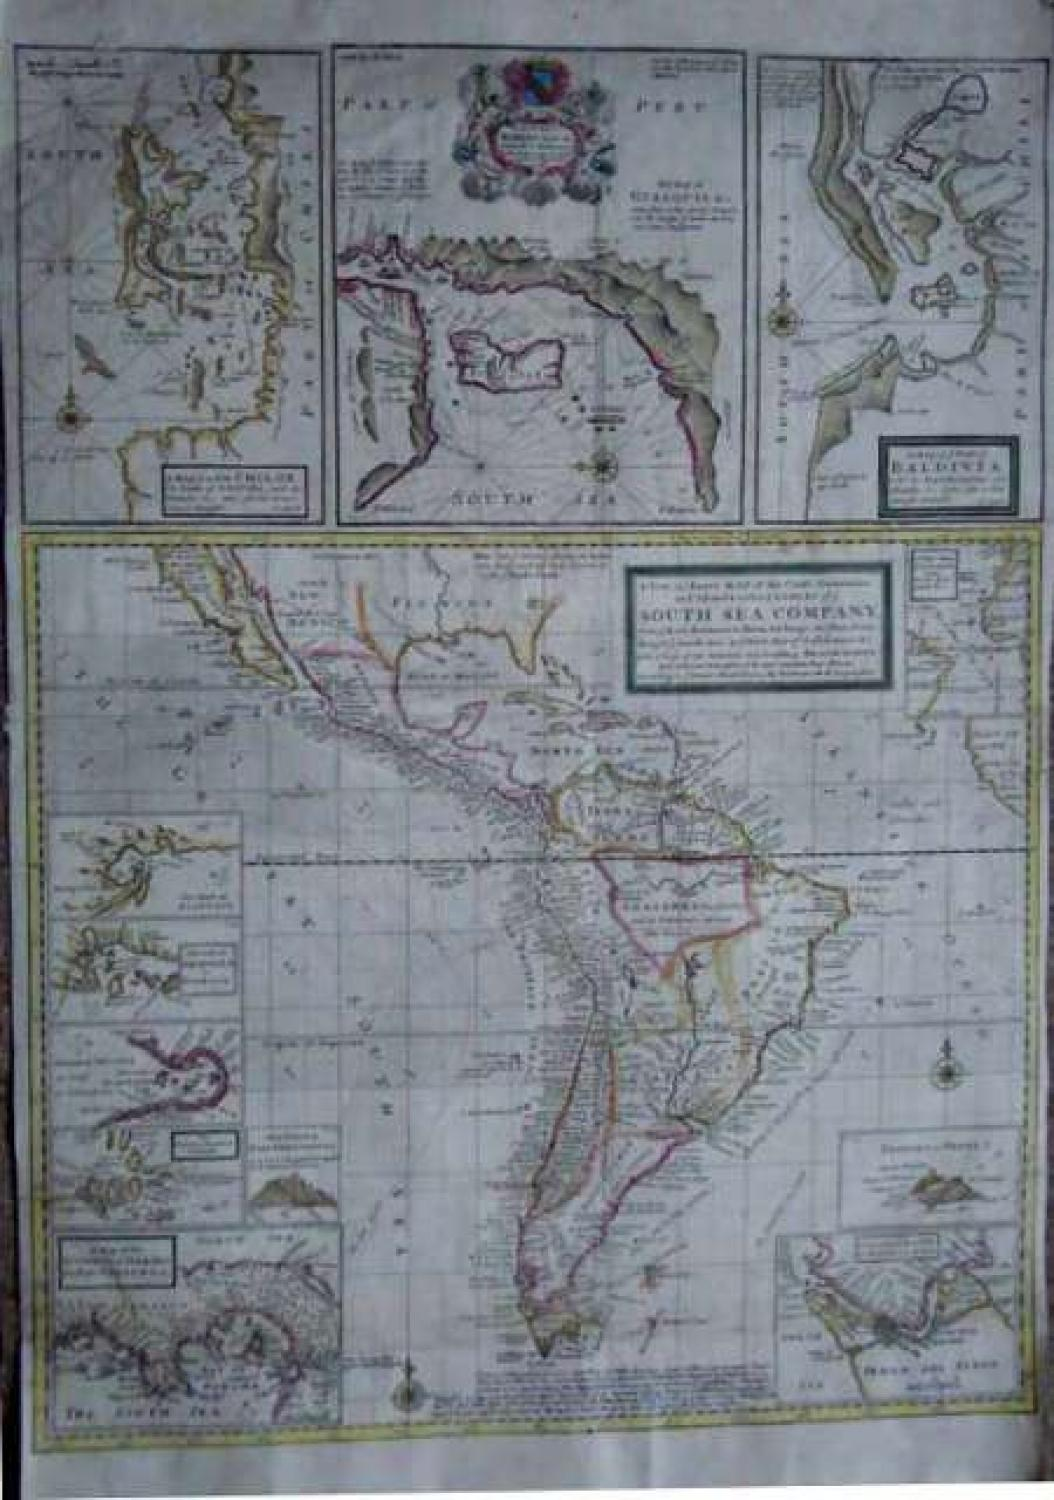 SOLD A New & Exact Map of the Coast, Countries and Islands within ye Limits of ye South Sea Company